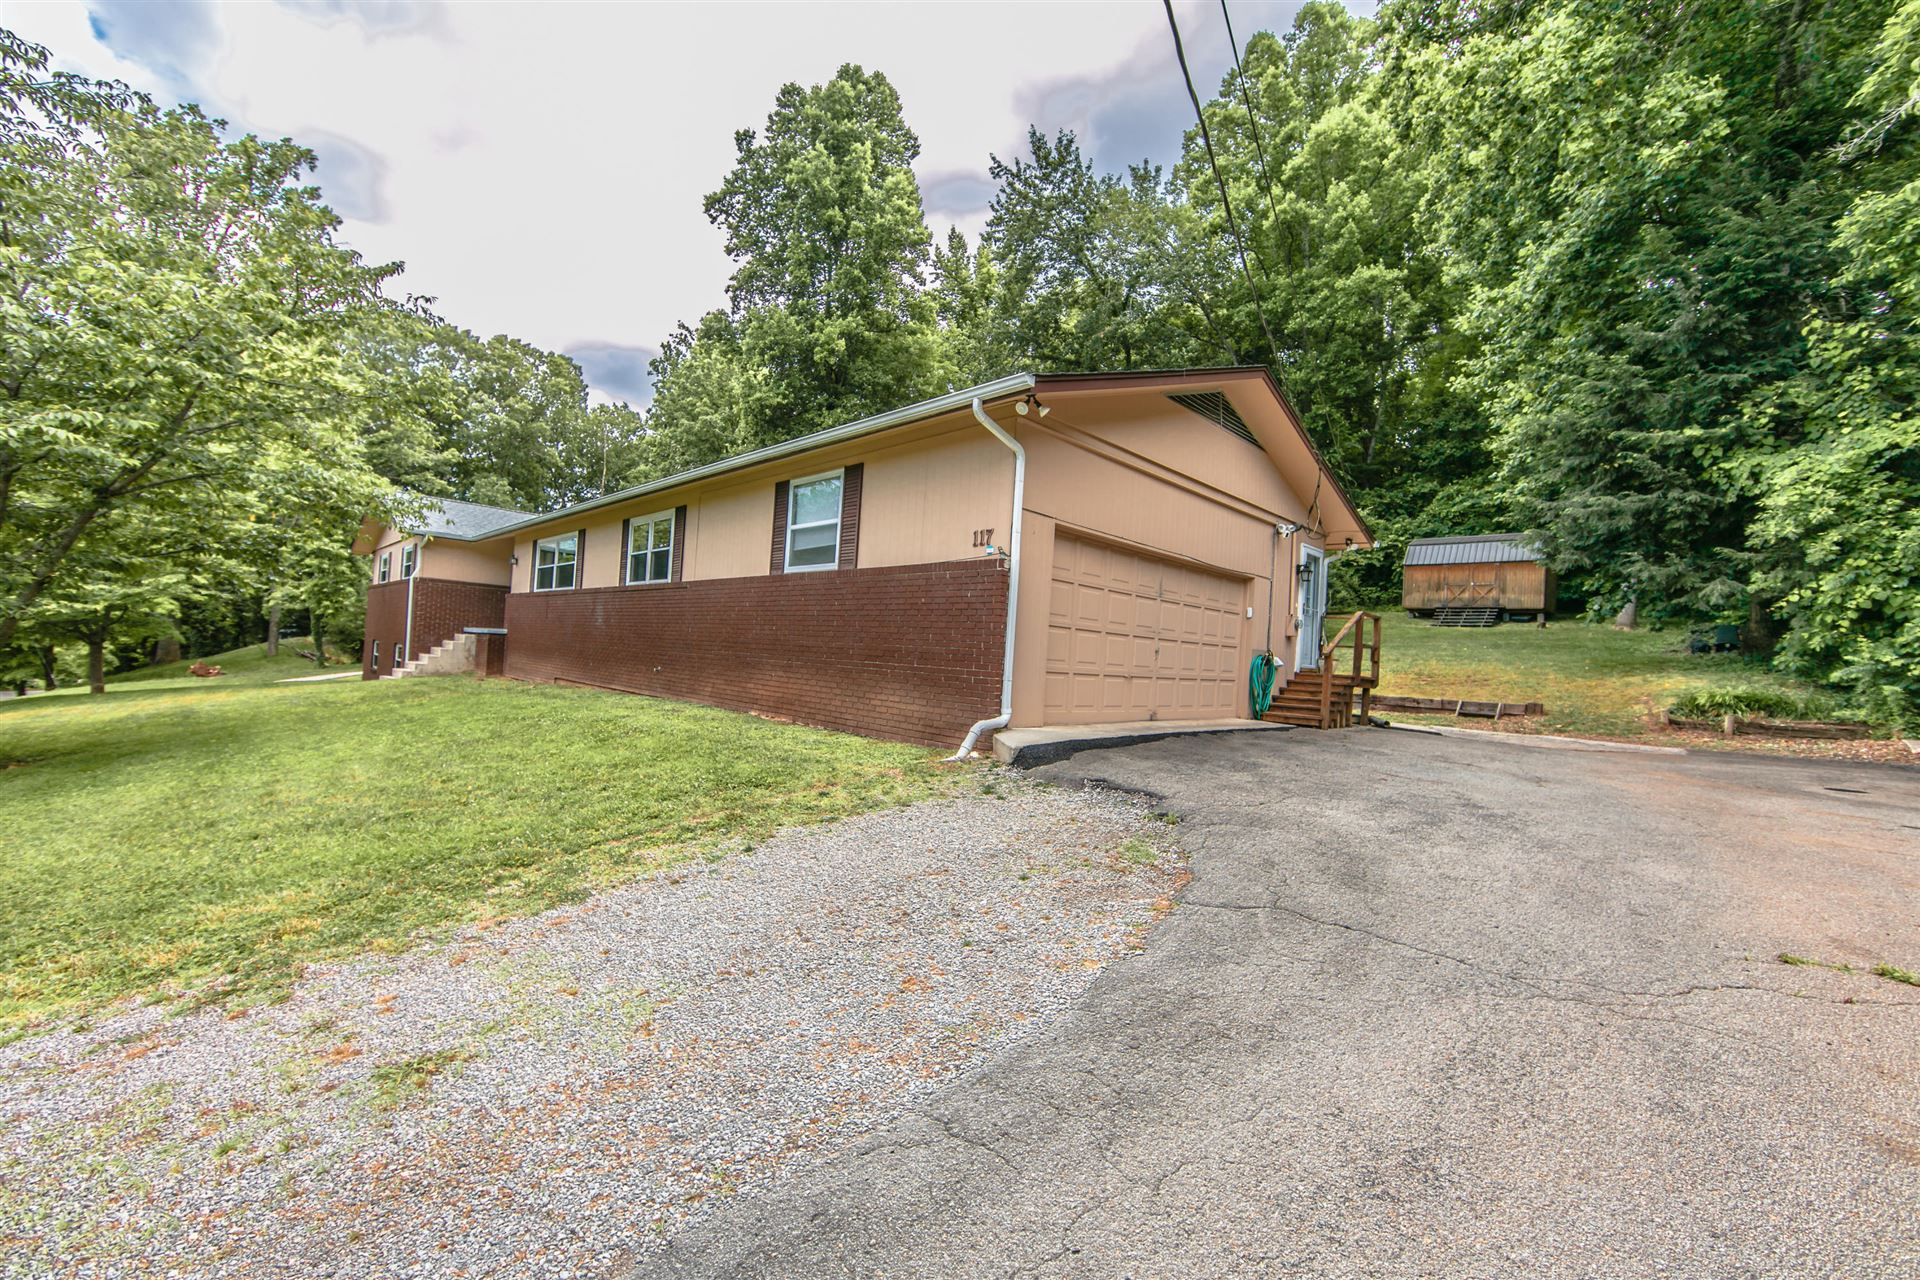 Photo of 117 Netherlands Rd, Oak Ridge, TN 37830 (MLS # 1121407)